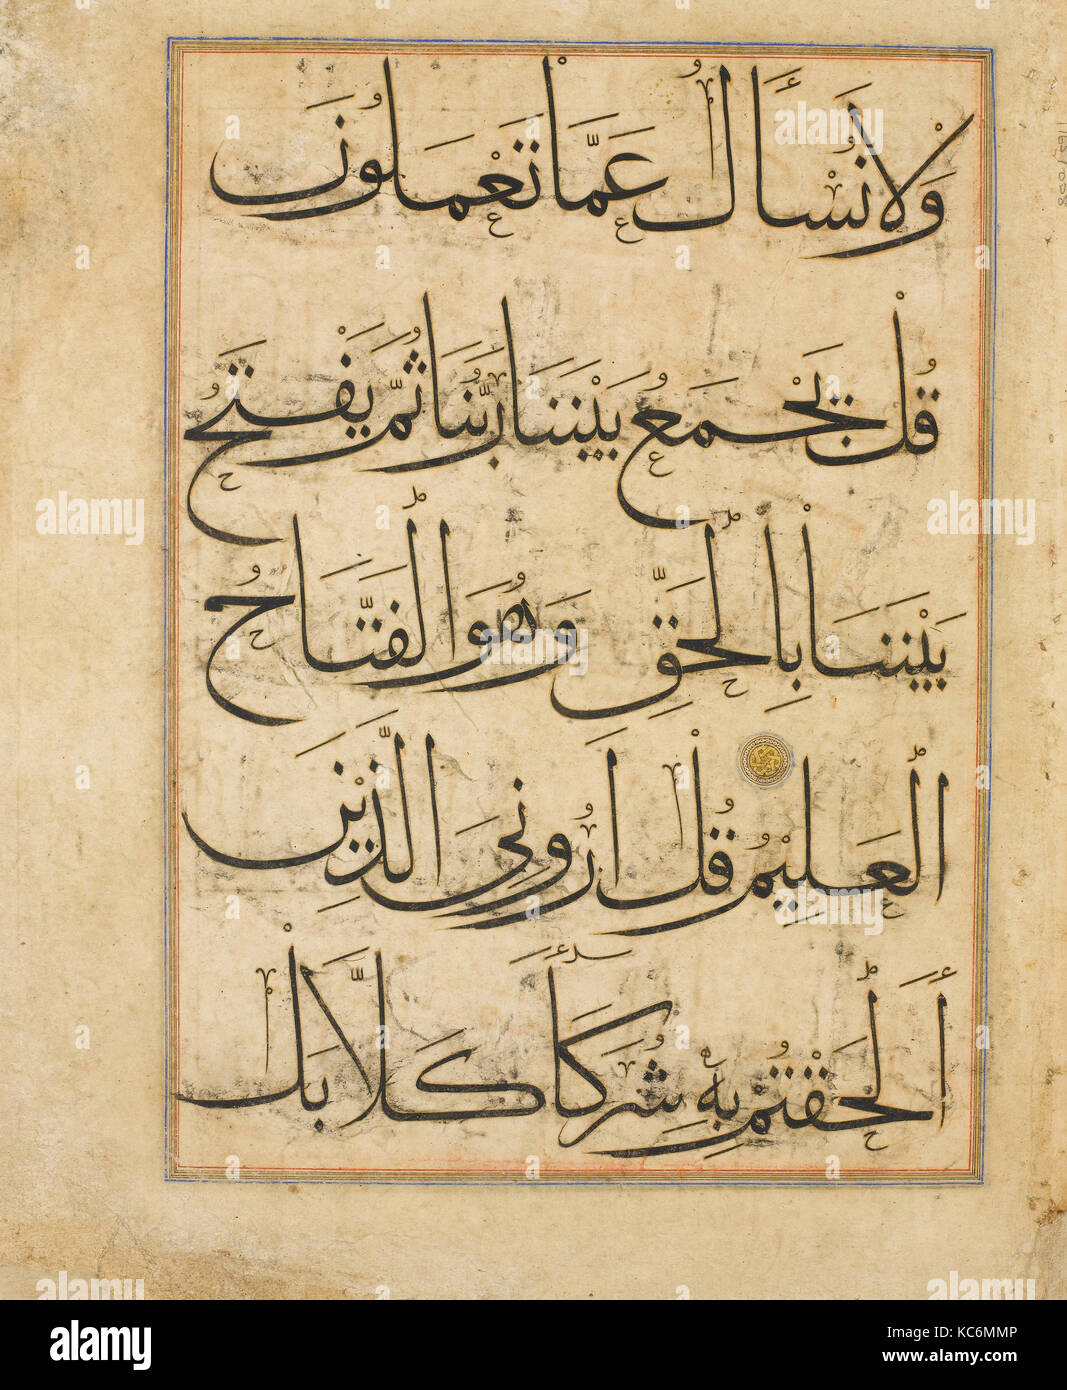 Qur'anic Compilation Page, ca. 1370, Possibly made in Iraq, Baghdad, Ink, gold, and opaque watercolor on paper, - Stock Image